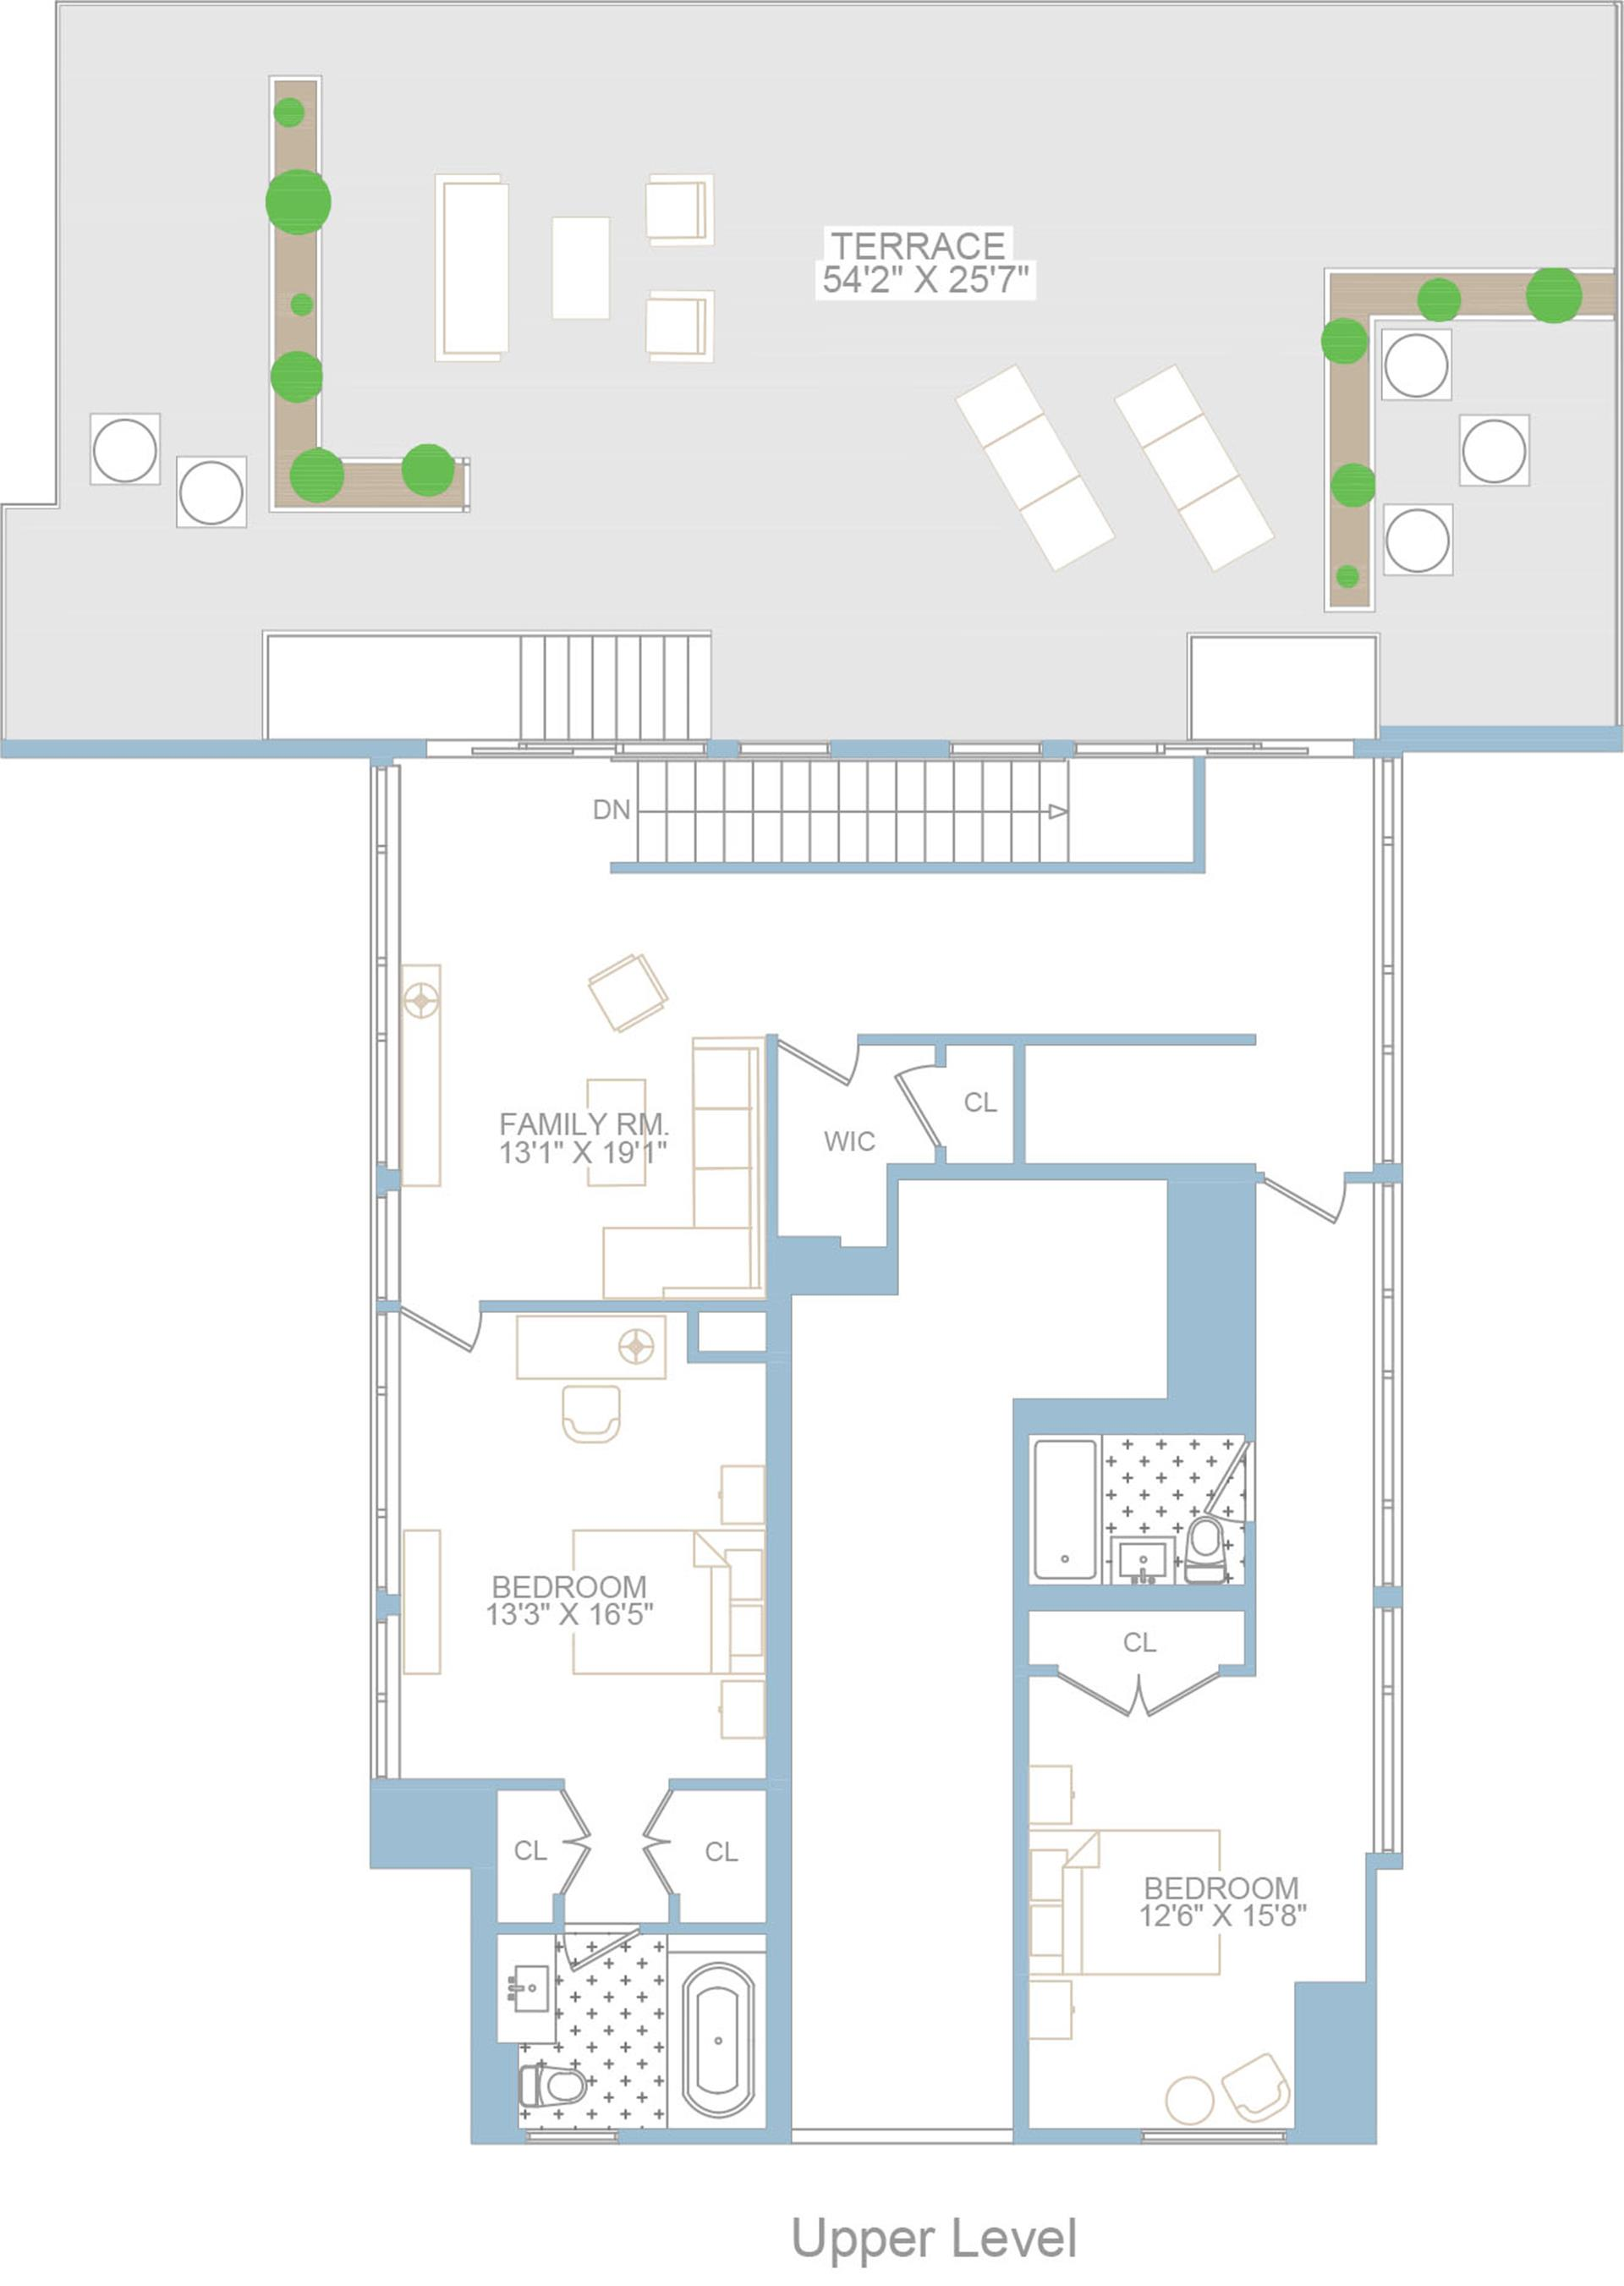 Floor plan of TRIBECA SUMMIT, 415 Greenwich St, PHC - TriBeCa, New York